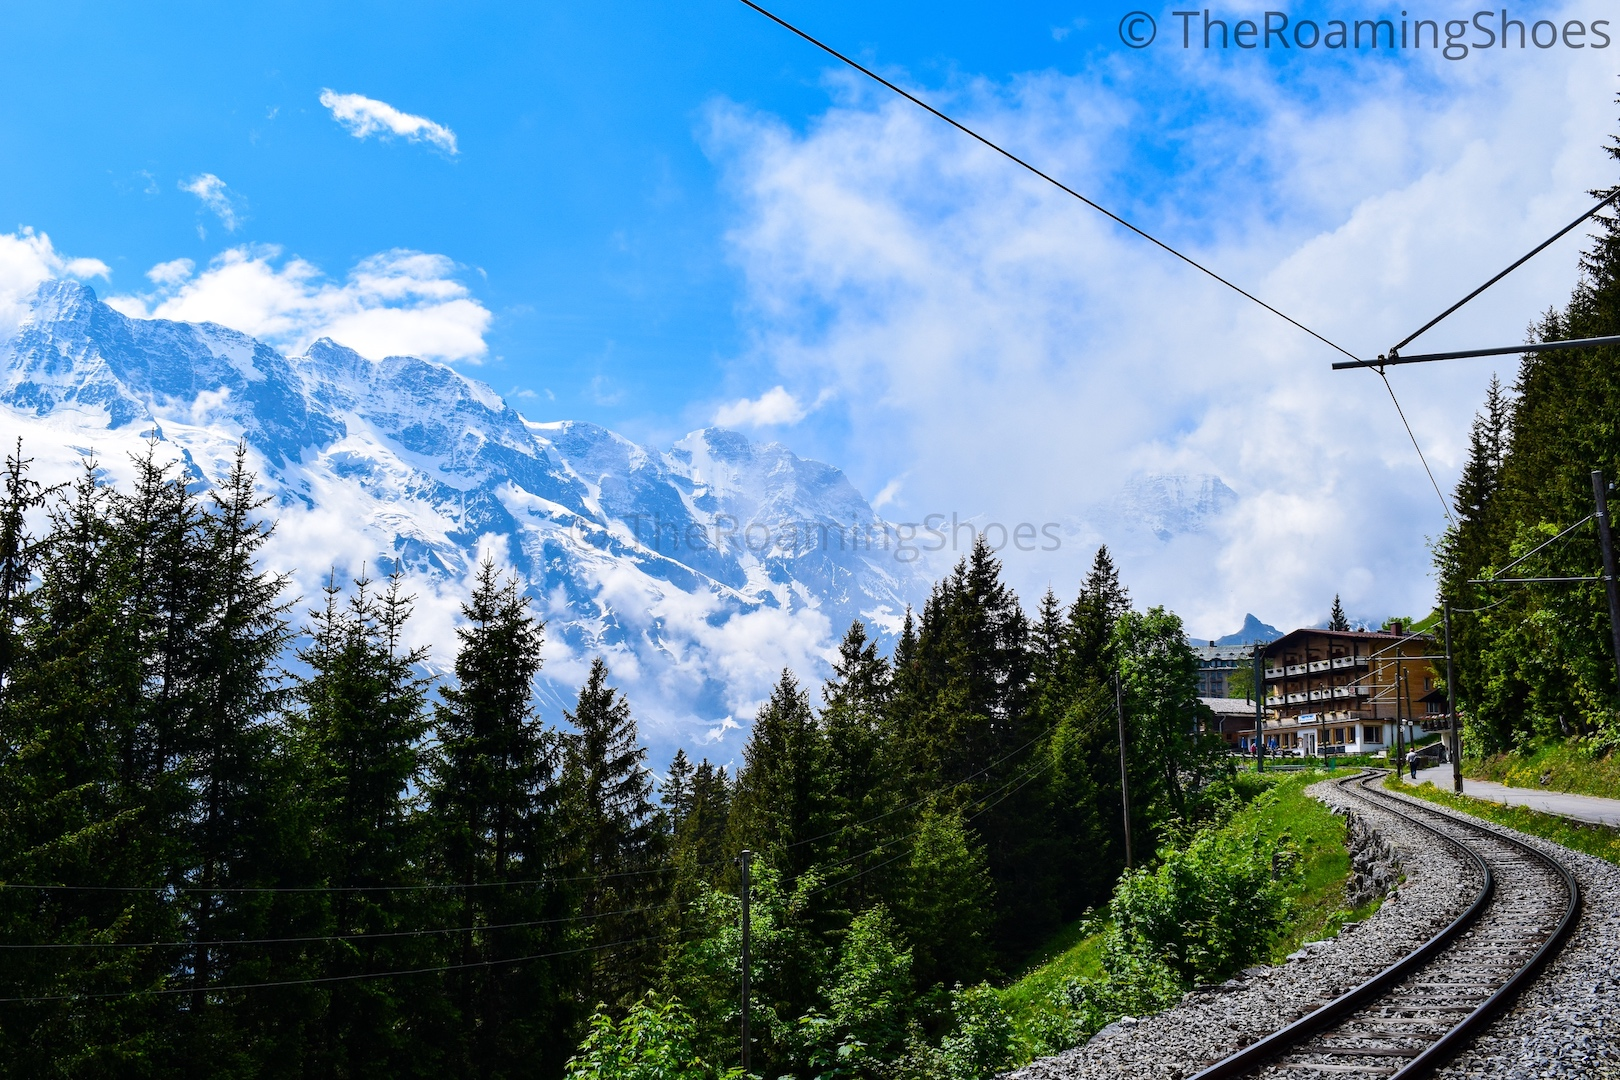 Railway station at Murren